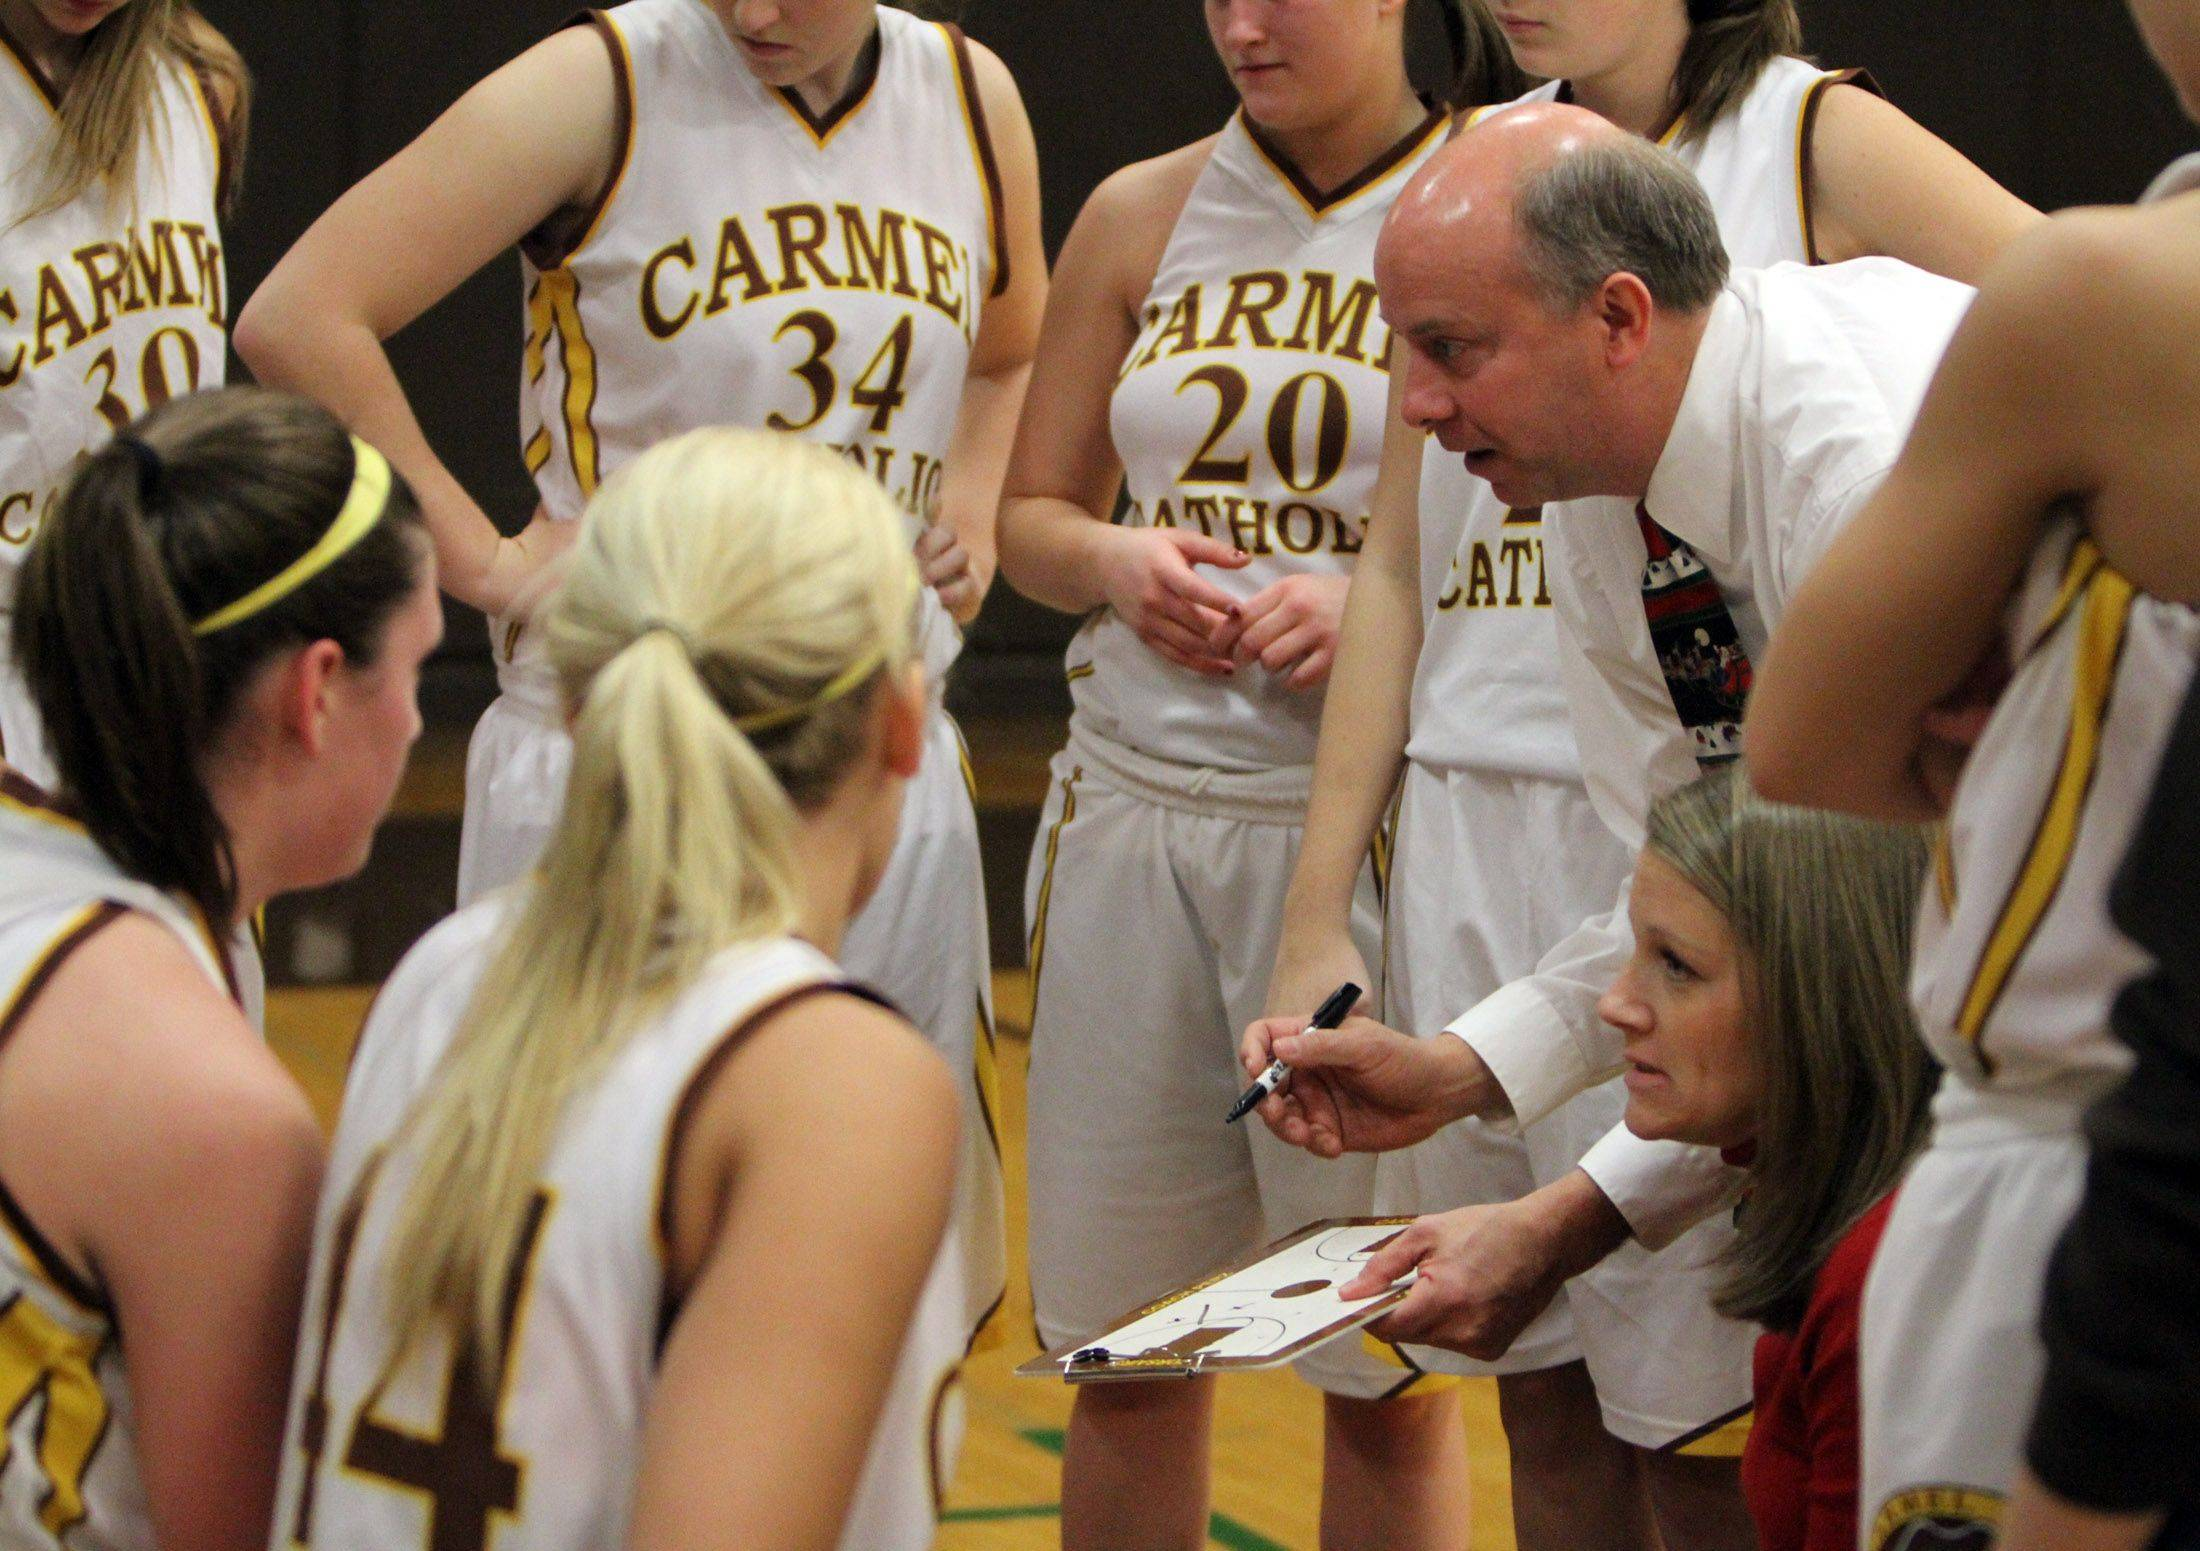 George LeClaire/gleclaire@dailyherald.com Images from the Bishop McNamara at Carmel girls basketball game Saturday, December 11.